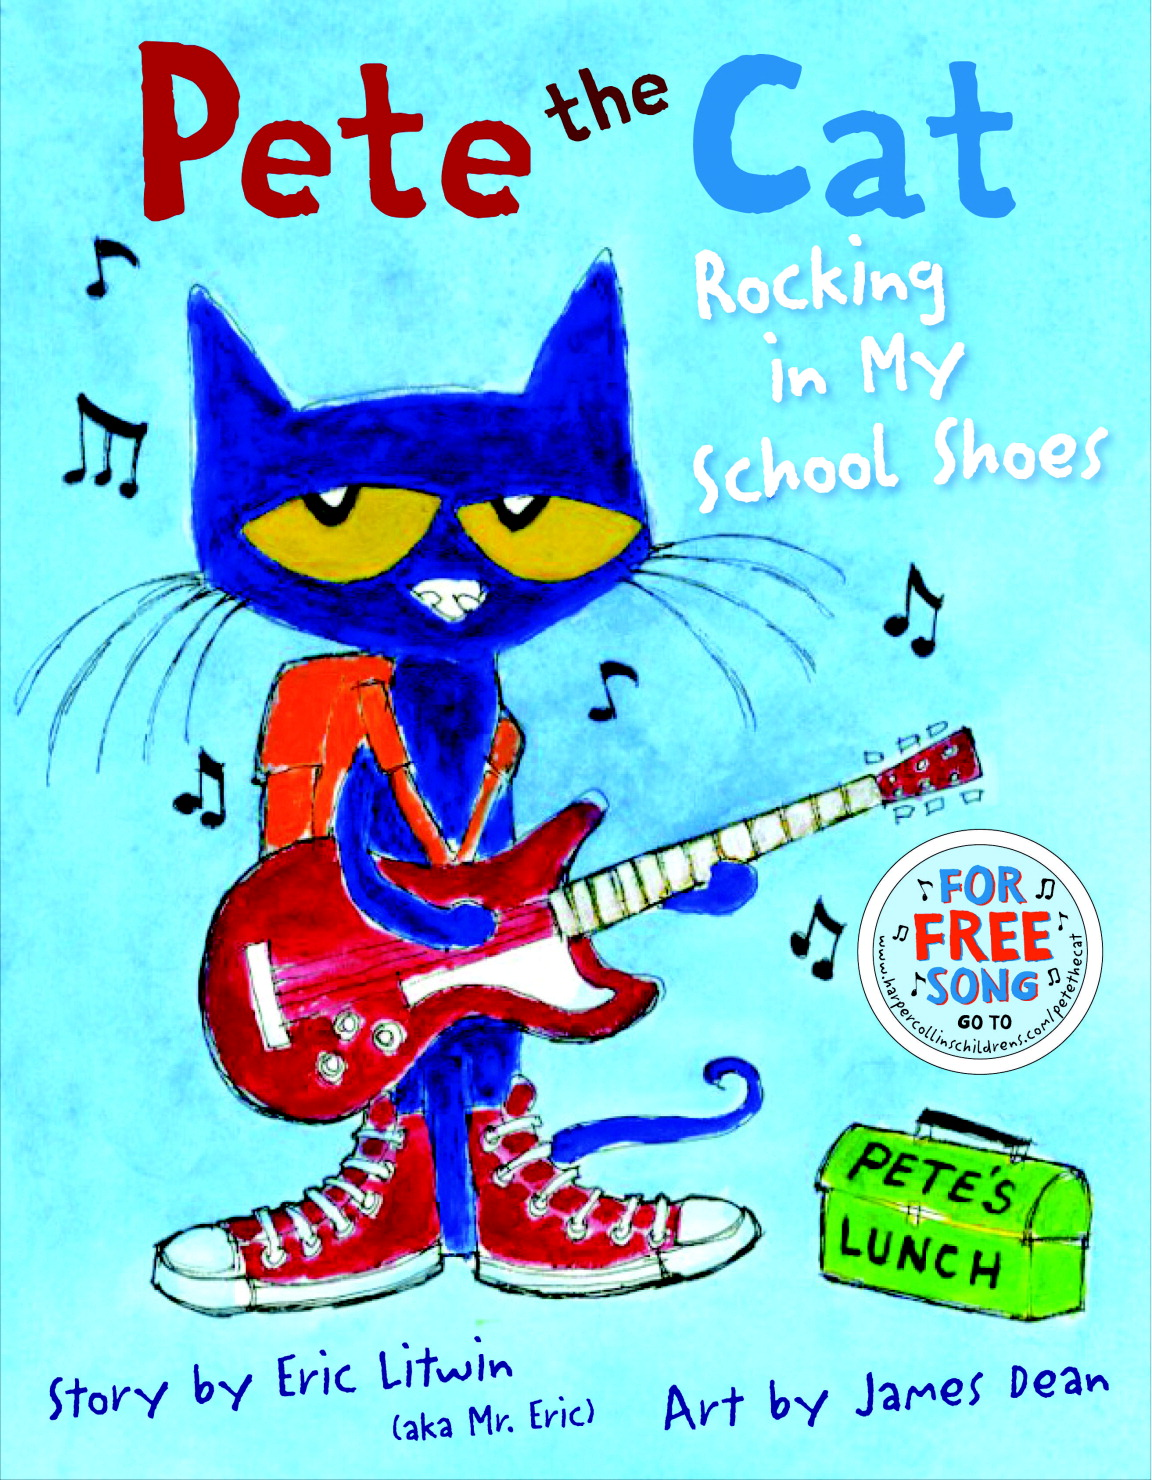 Pete the Cat: Rocking in My School Shoes by Eric Litwin, Grade PreK to 3